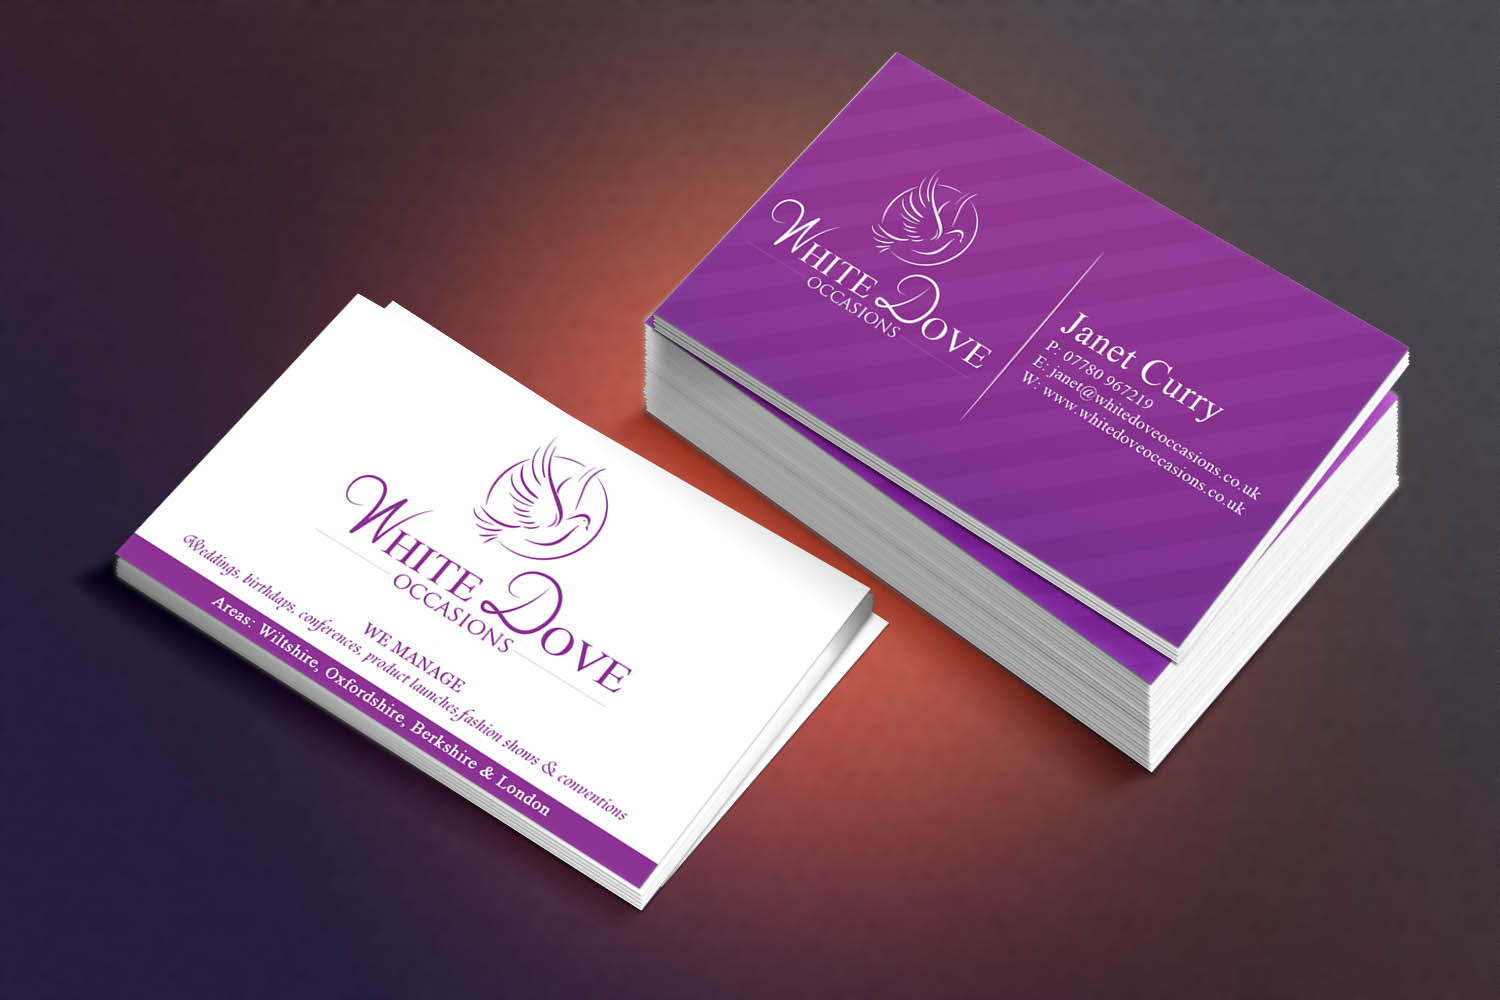 Elegant upmarket business card design for johnson gardening business card design by sandaruwan for business card for wedding event planning company design magicingreecefo Gallery